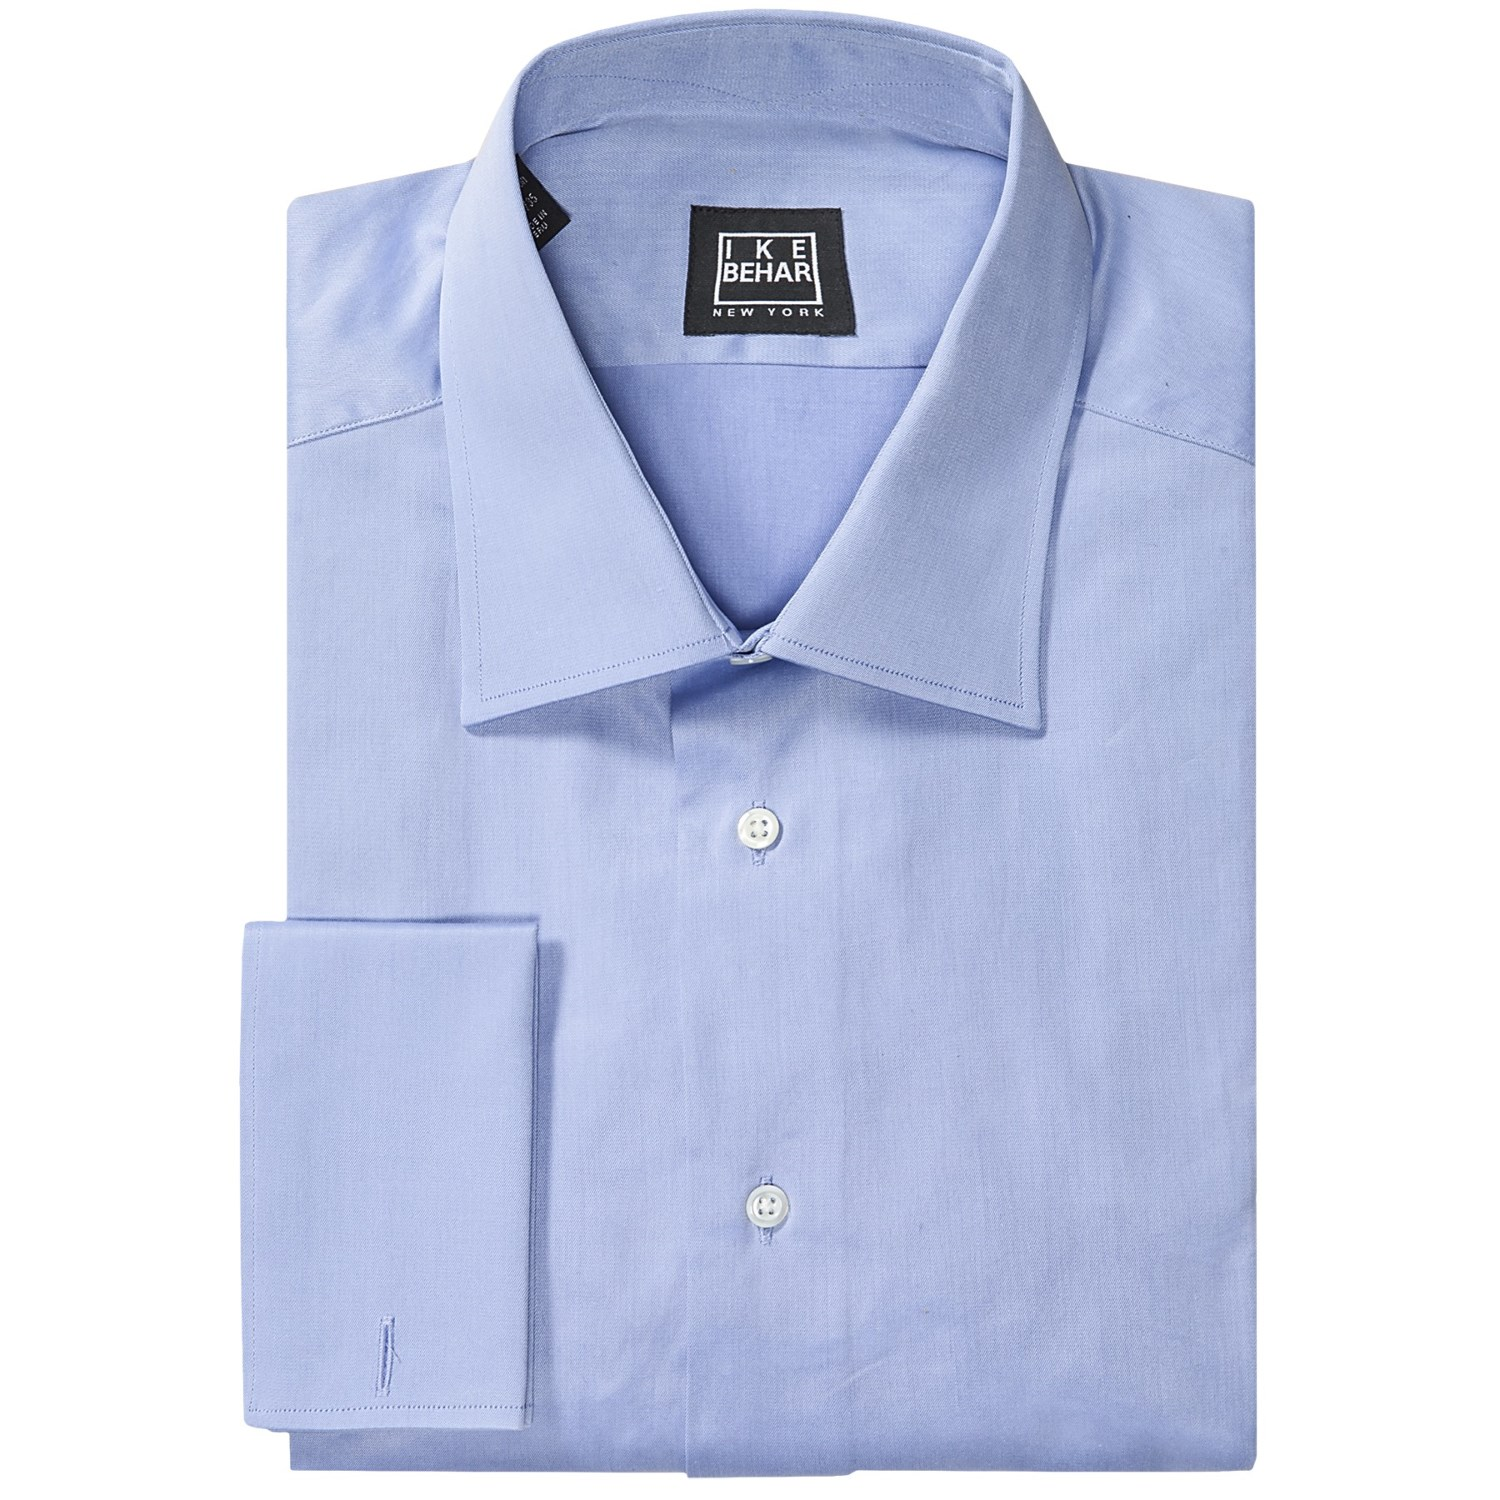 Any Size dress shirt with white collar and cuffs mens dress shirts with contrasting cuffs mens french cuff dress shirts discount mens french cuff dress shirts slim.